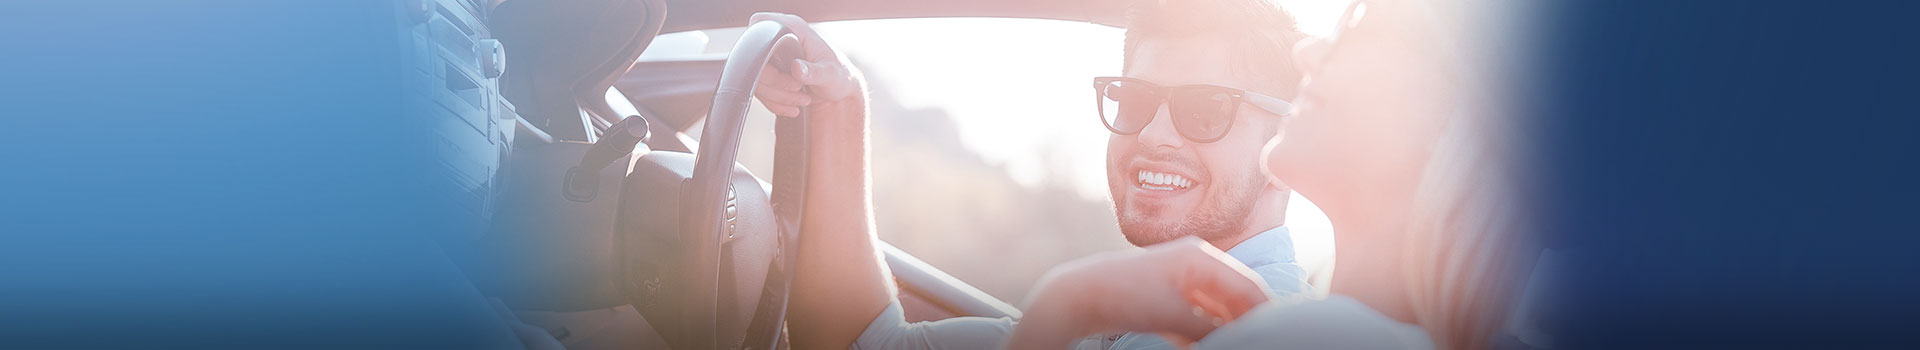 young man in sunglasses driving